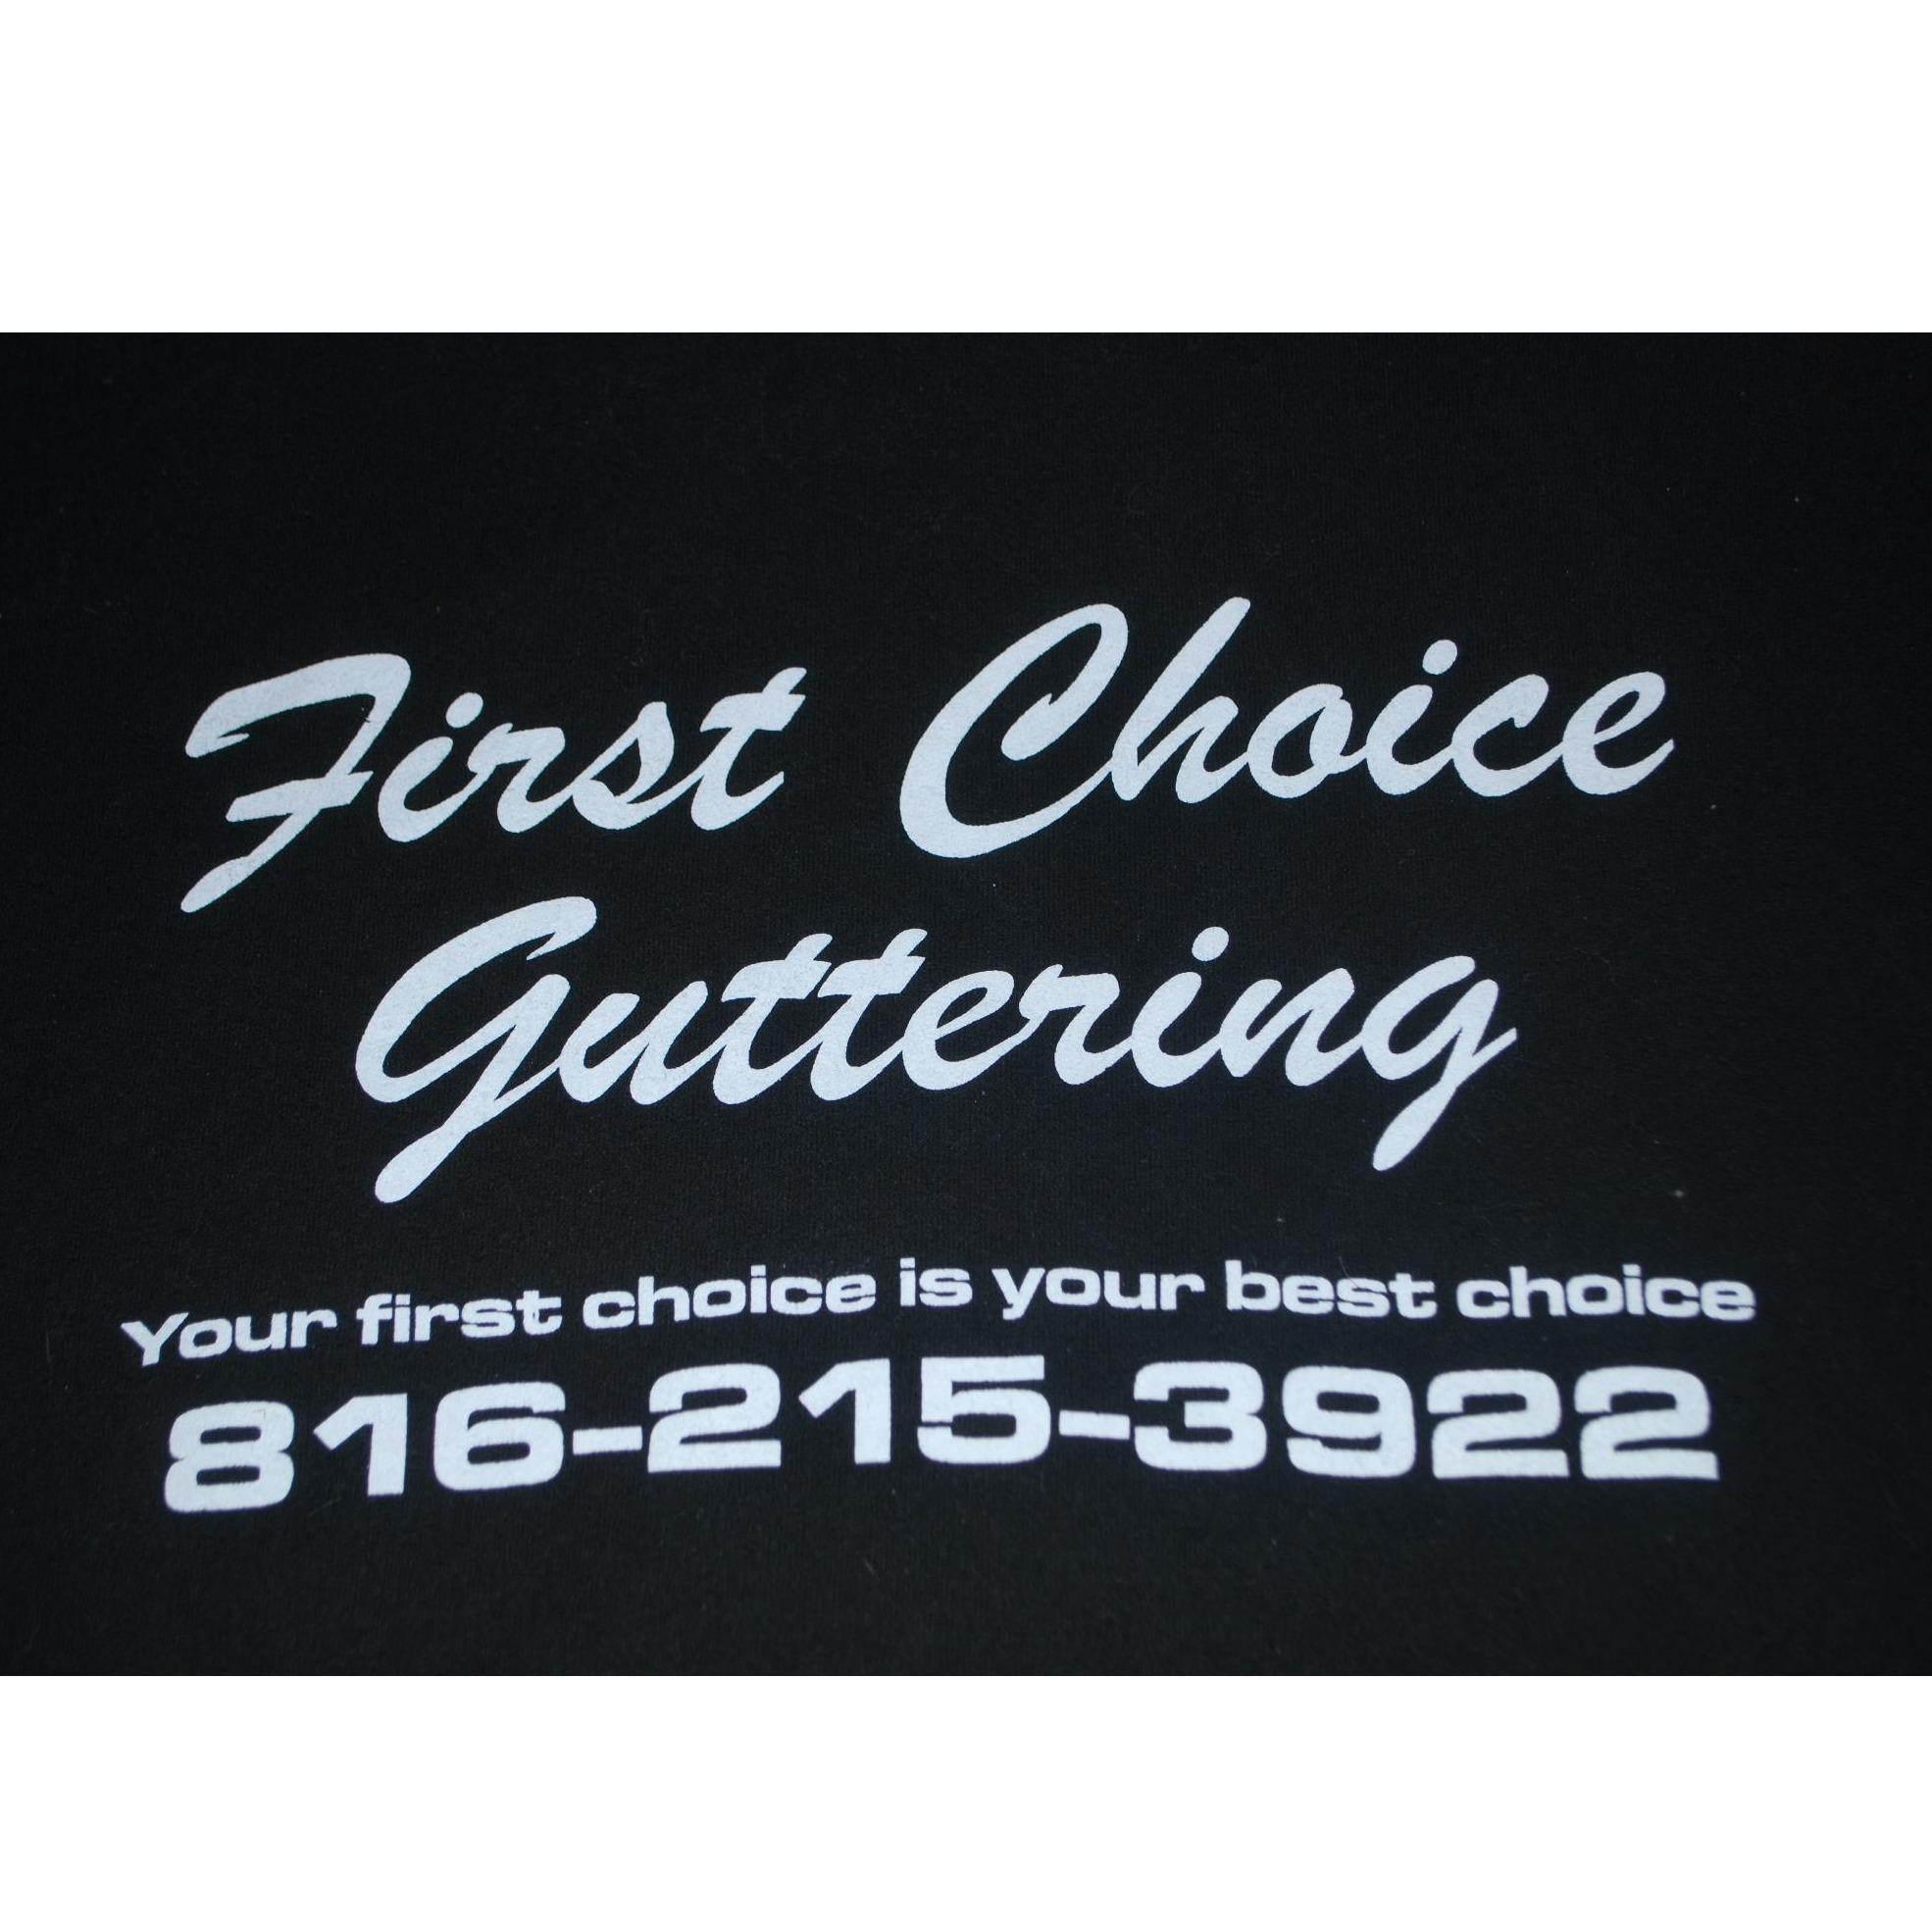 First Choice Guttering